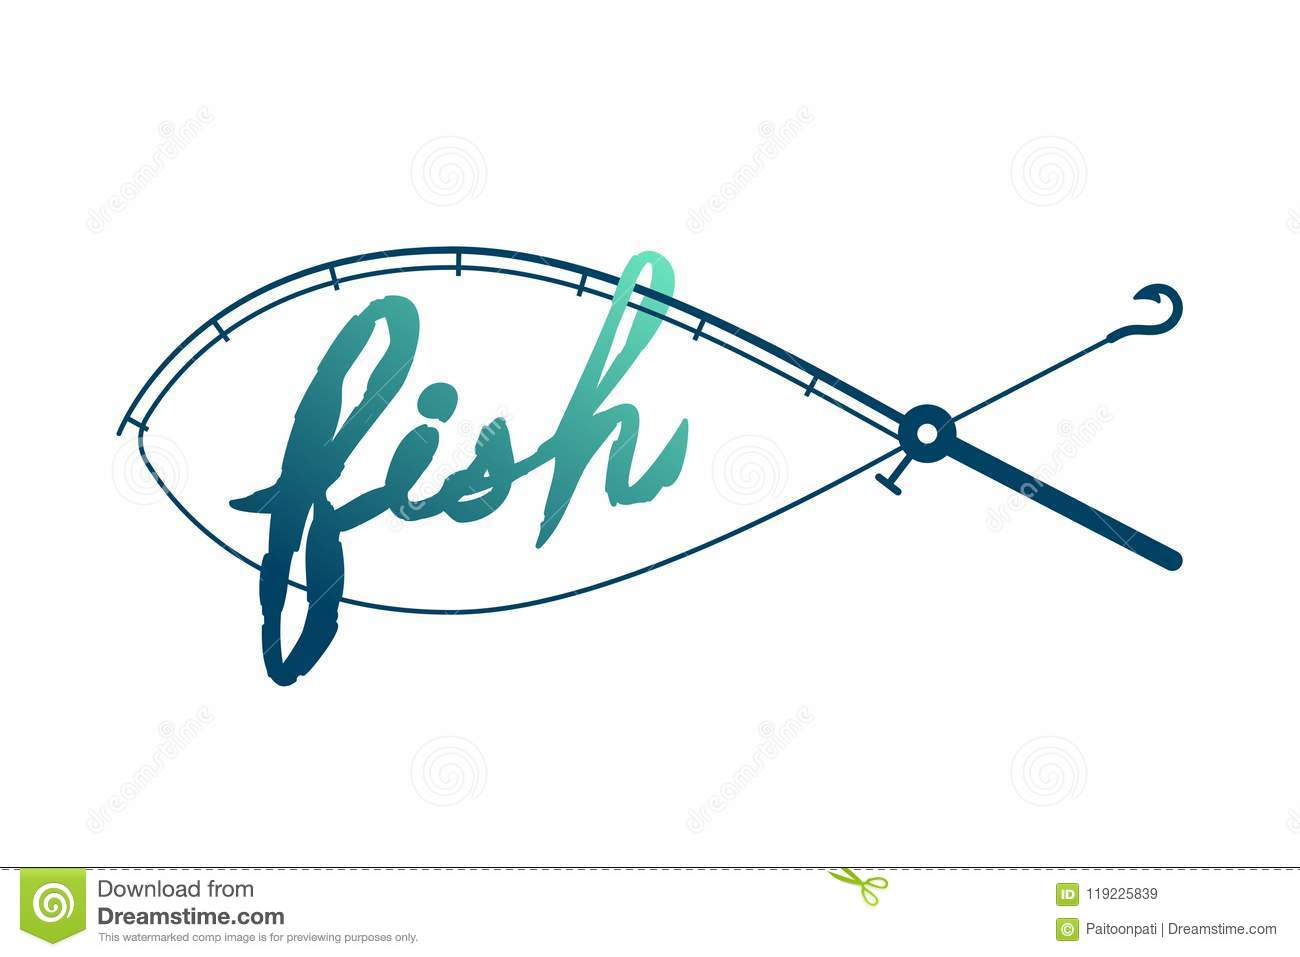 Fish shape made from Fishing rod frame, logo icon set design green and dark blue gradient color illustration